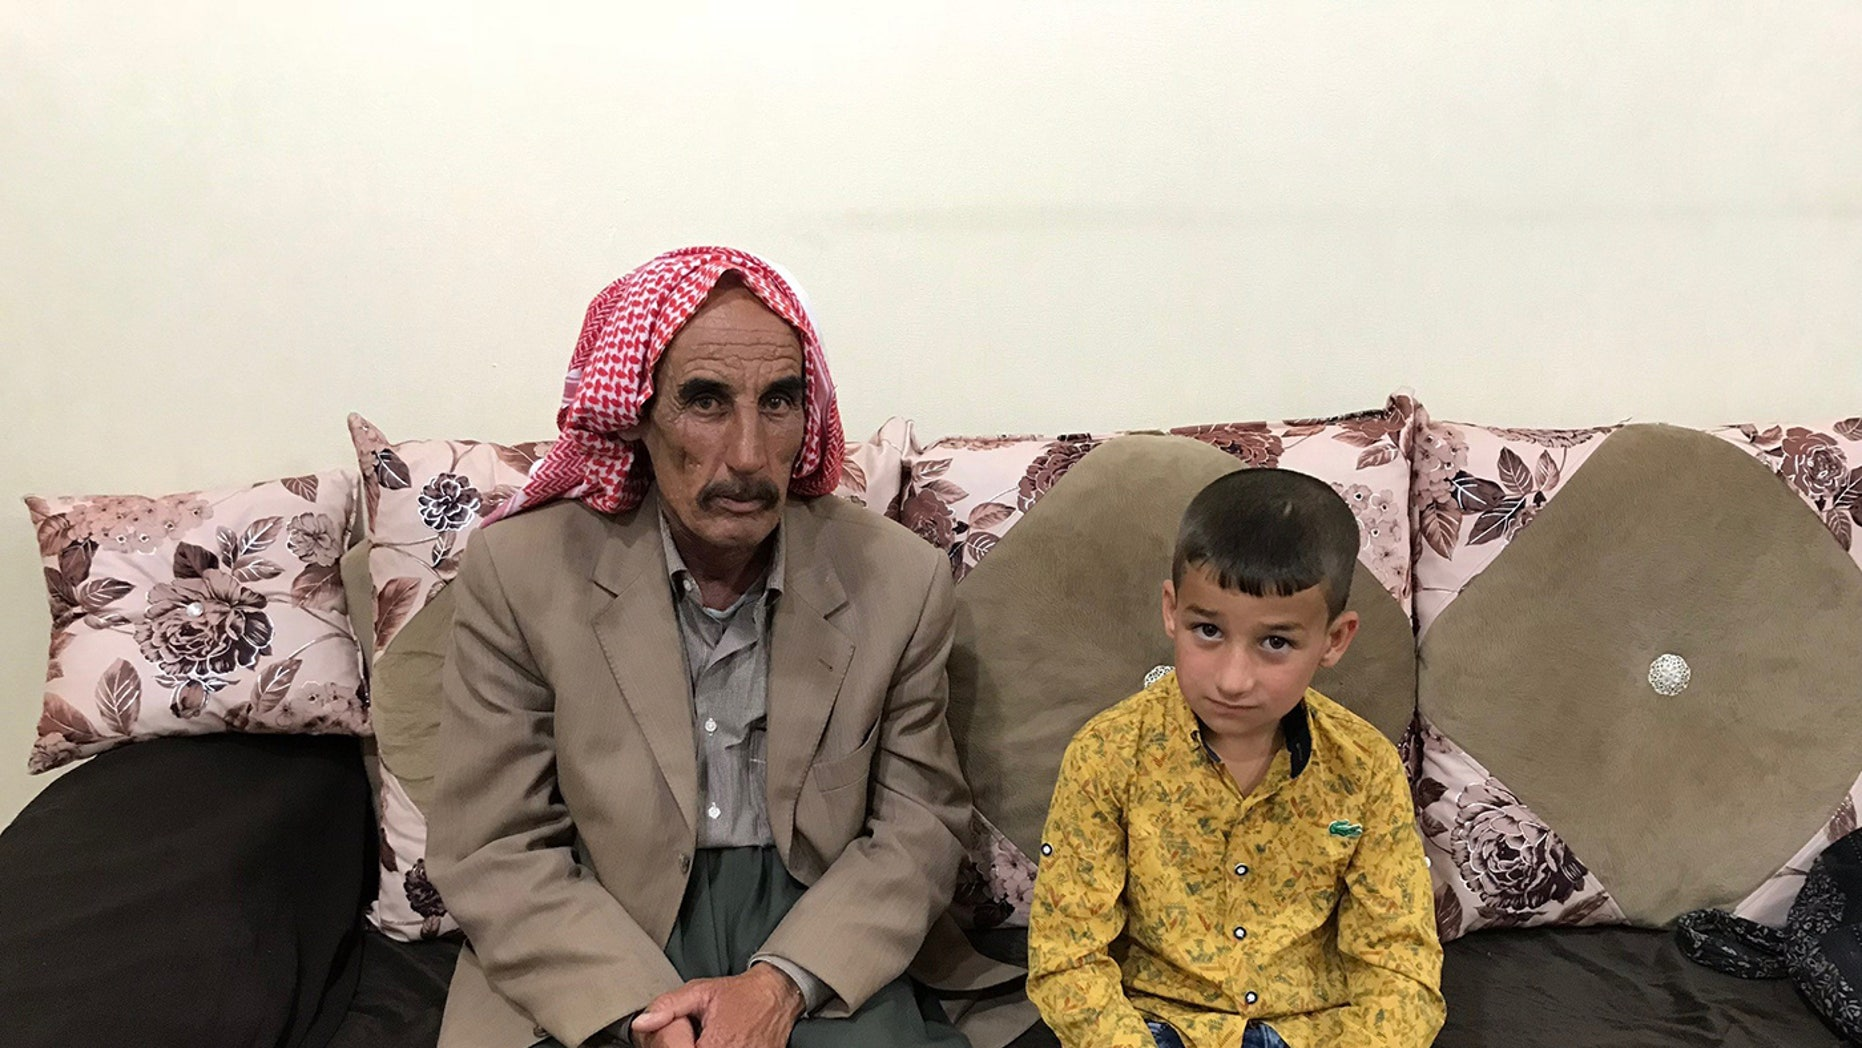 Yazidi father Kassim reunited with his son Lazem, 6, who was held by an ISIS family in Turkey